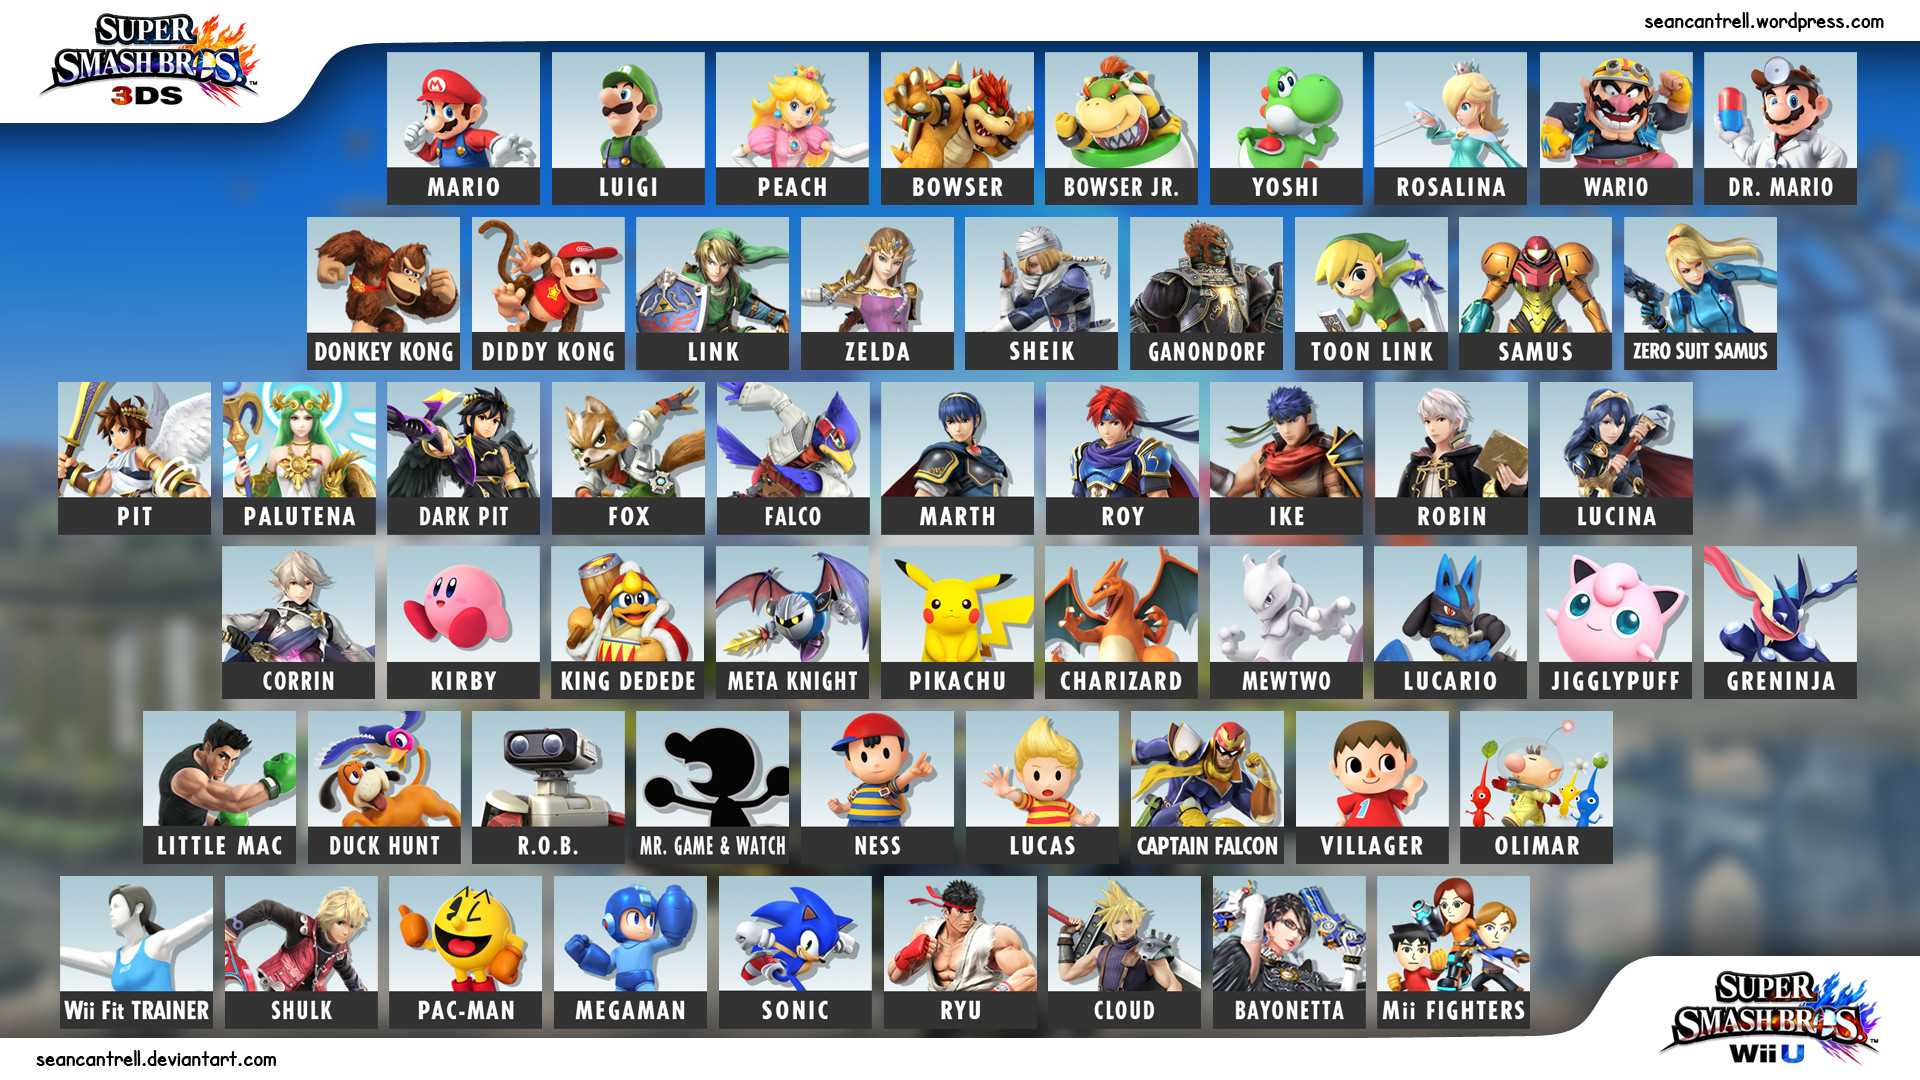 1920x1080 smashbrostiles_layout. Character Panel Wallpaper